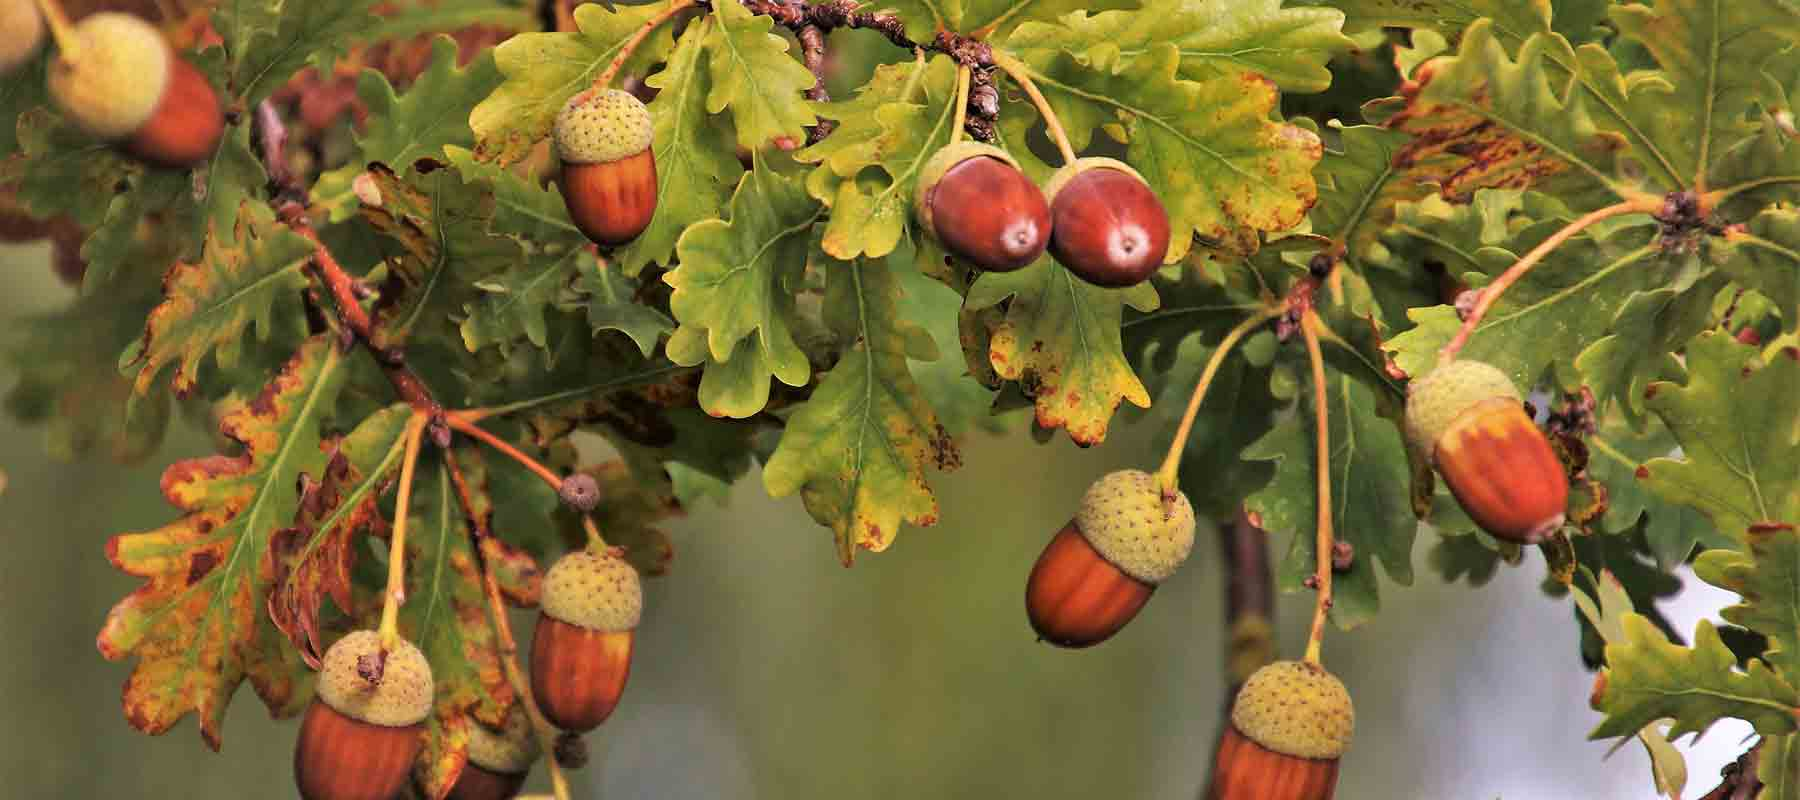 Real Acorn Jewellery and Gifts made using real Acorns